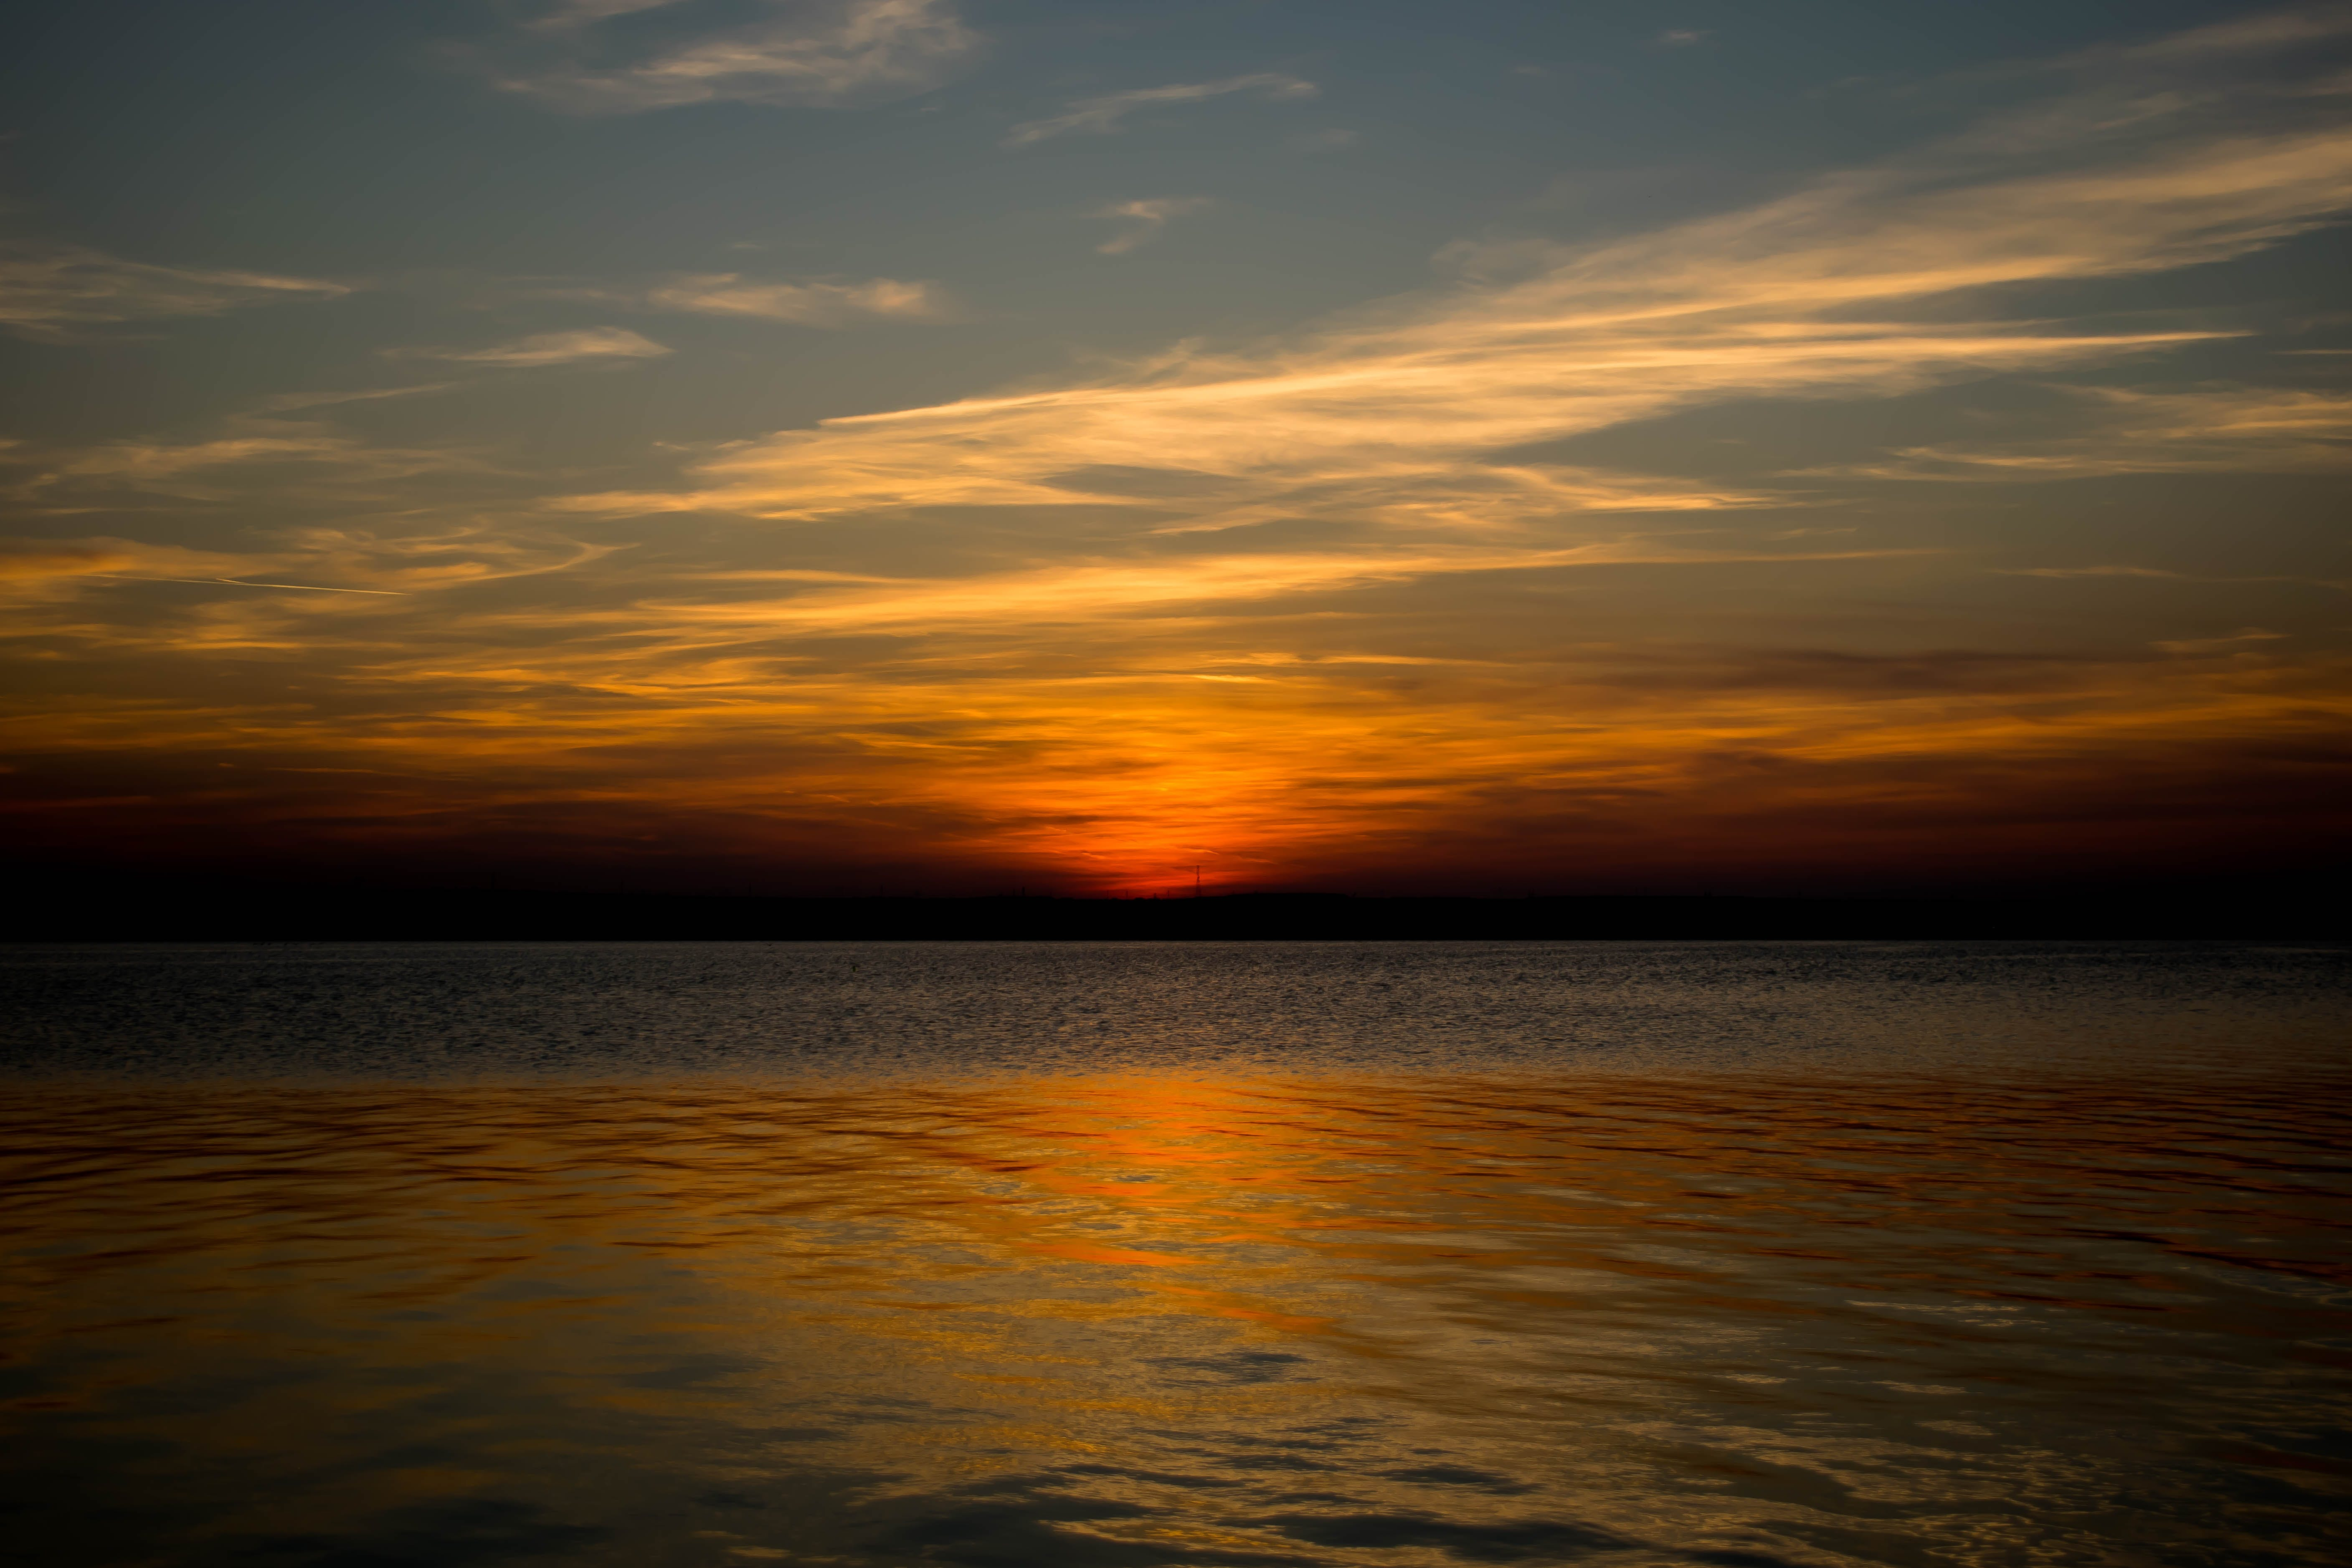 Photograph of Body of Water during Sunset